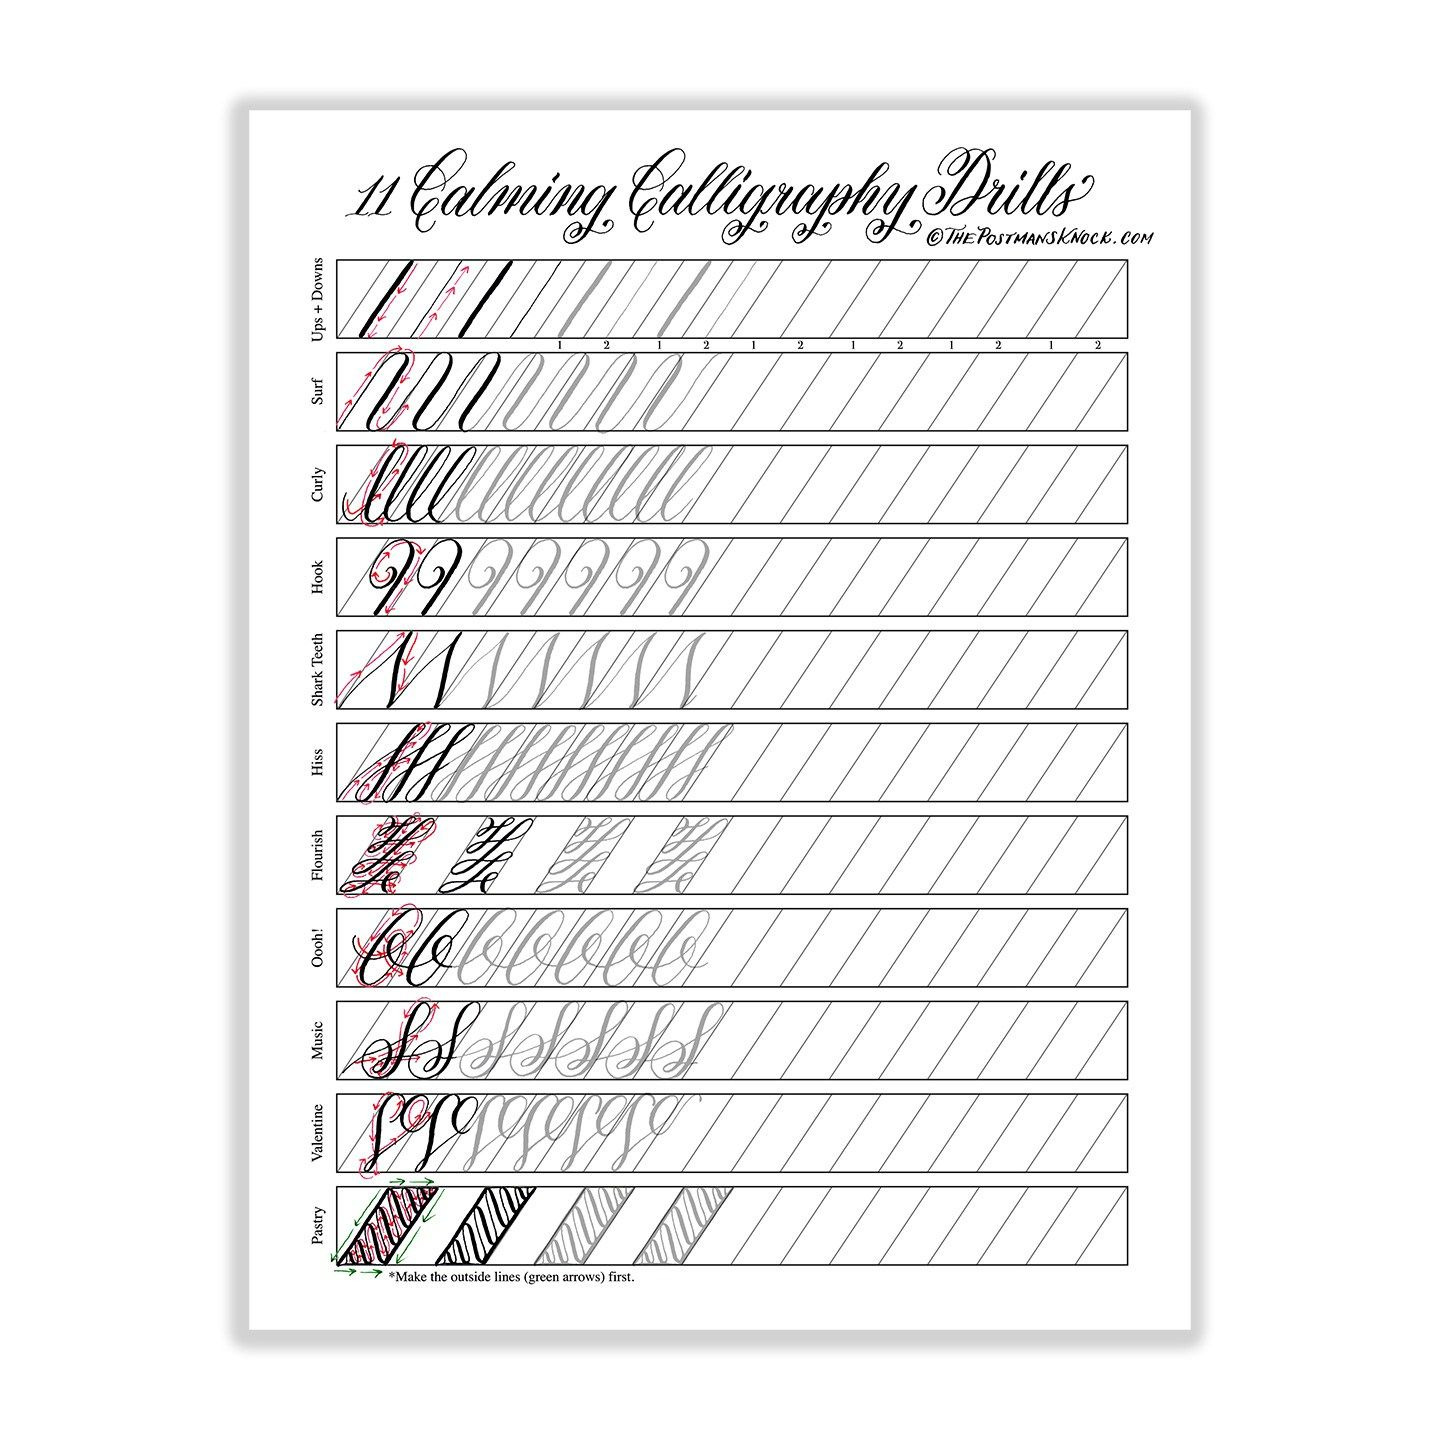 Calming calligraphy drills printable